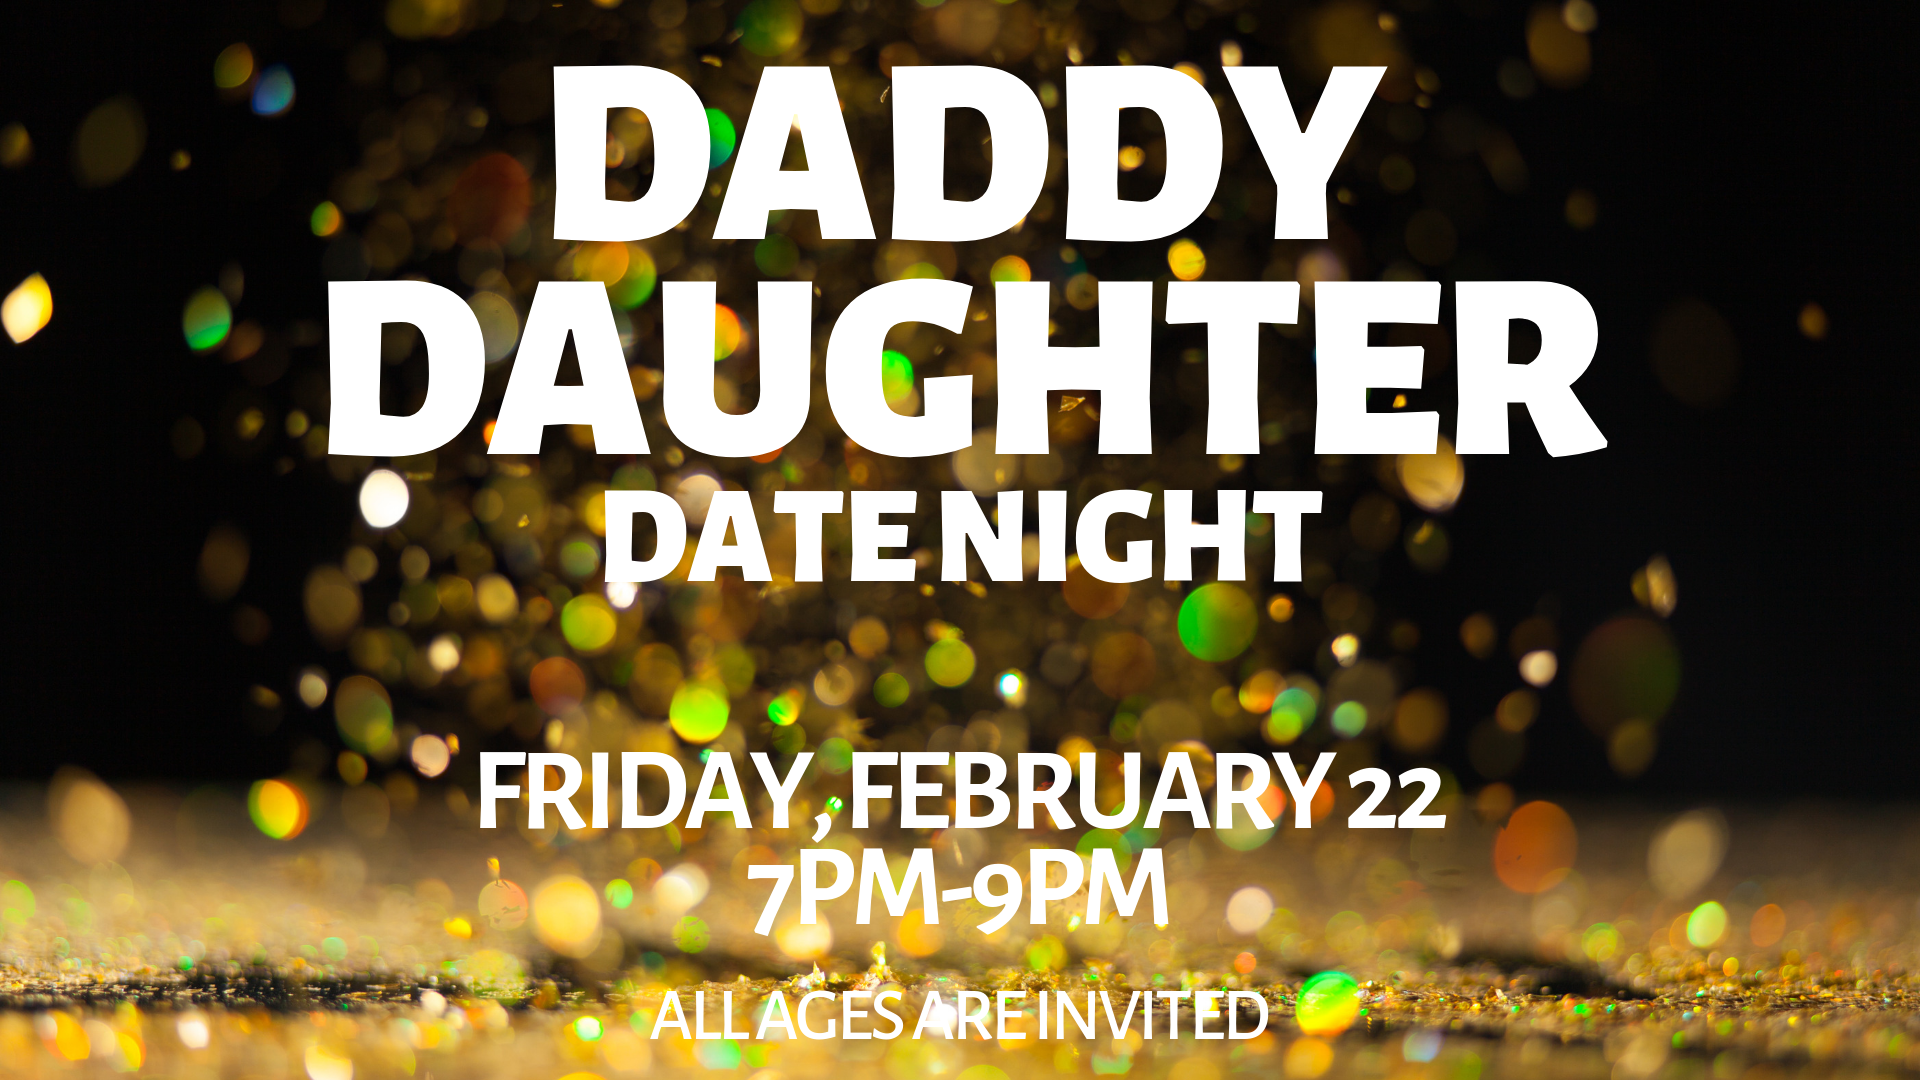 Daddy Daughter Date Announcement Slides.png